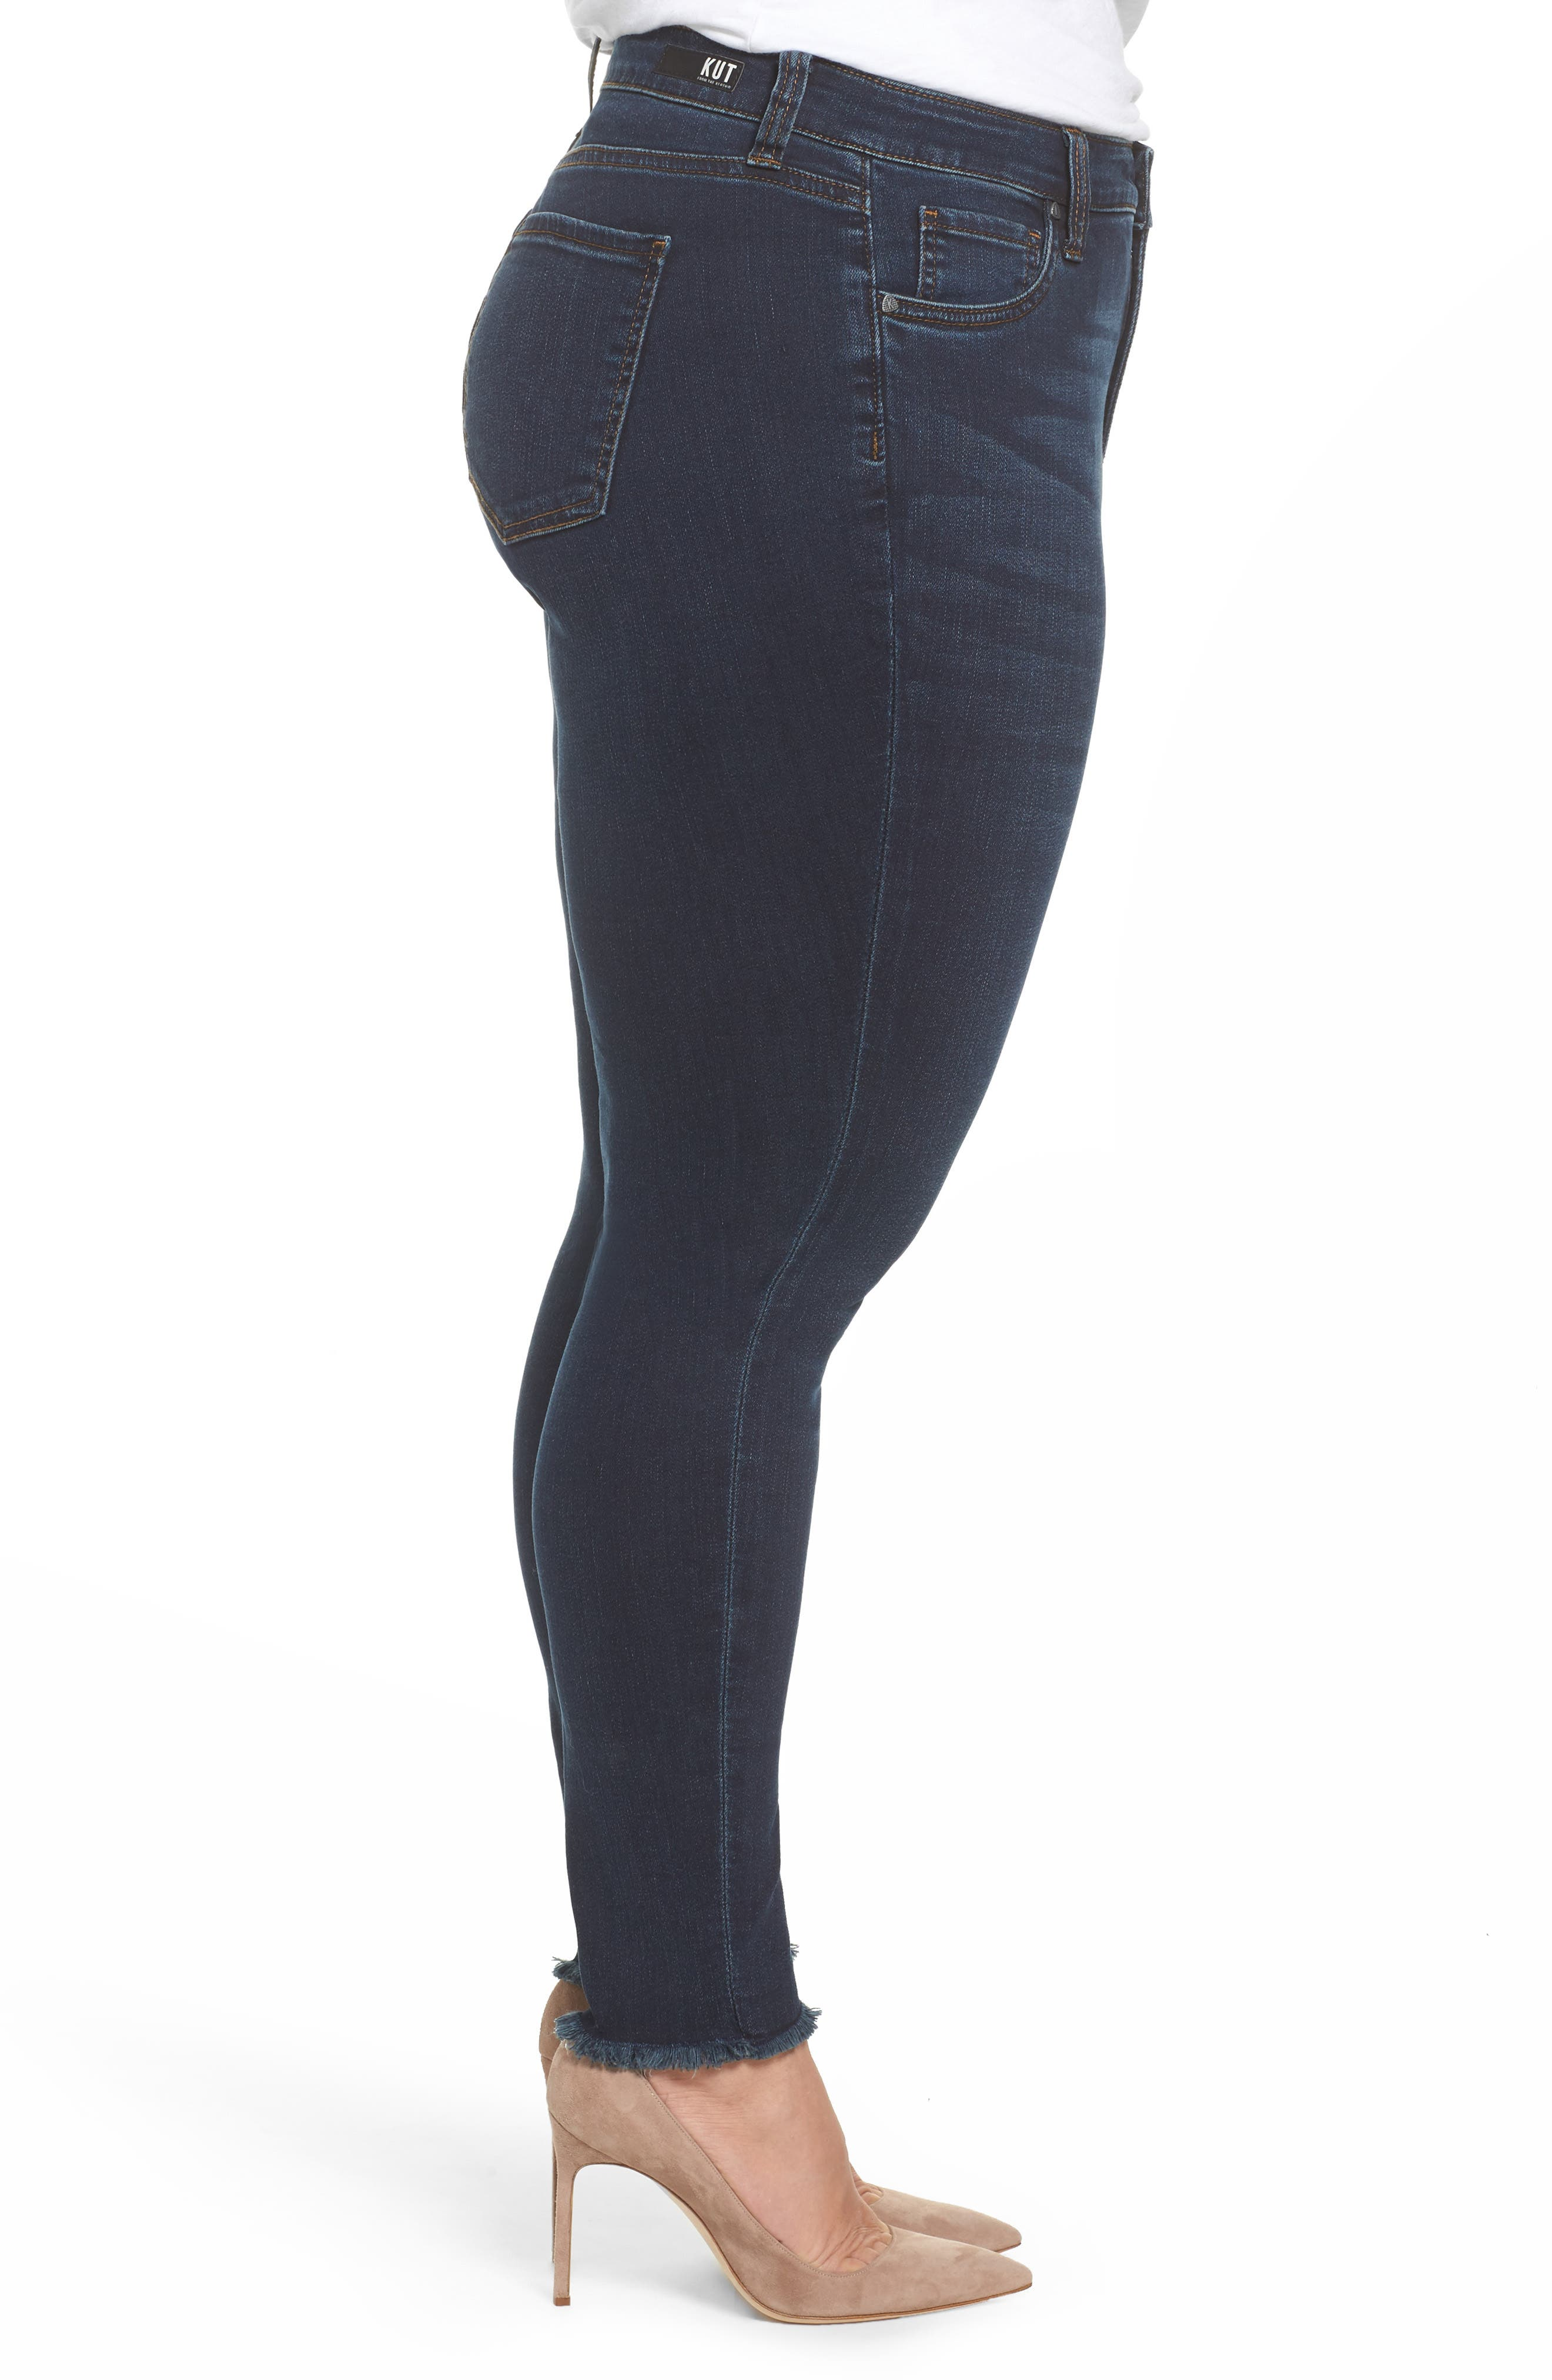 Alternate Image 3  - KUT from the Kloth Donna Frayed Skinny Crop Jeans (Certitude) (Plus Size)